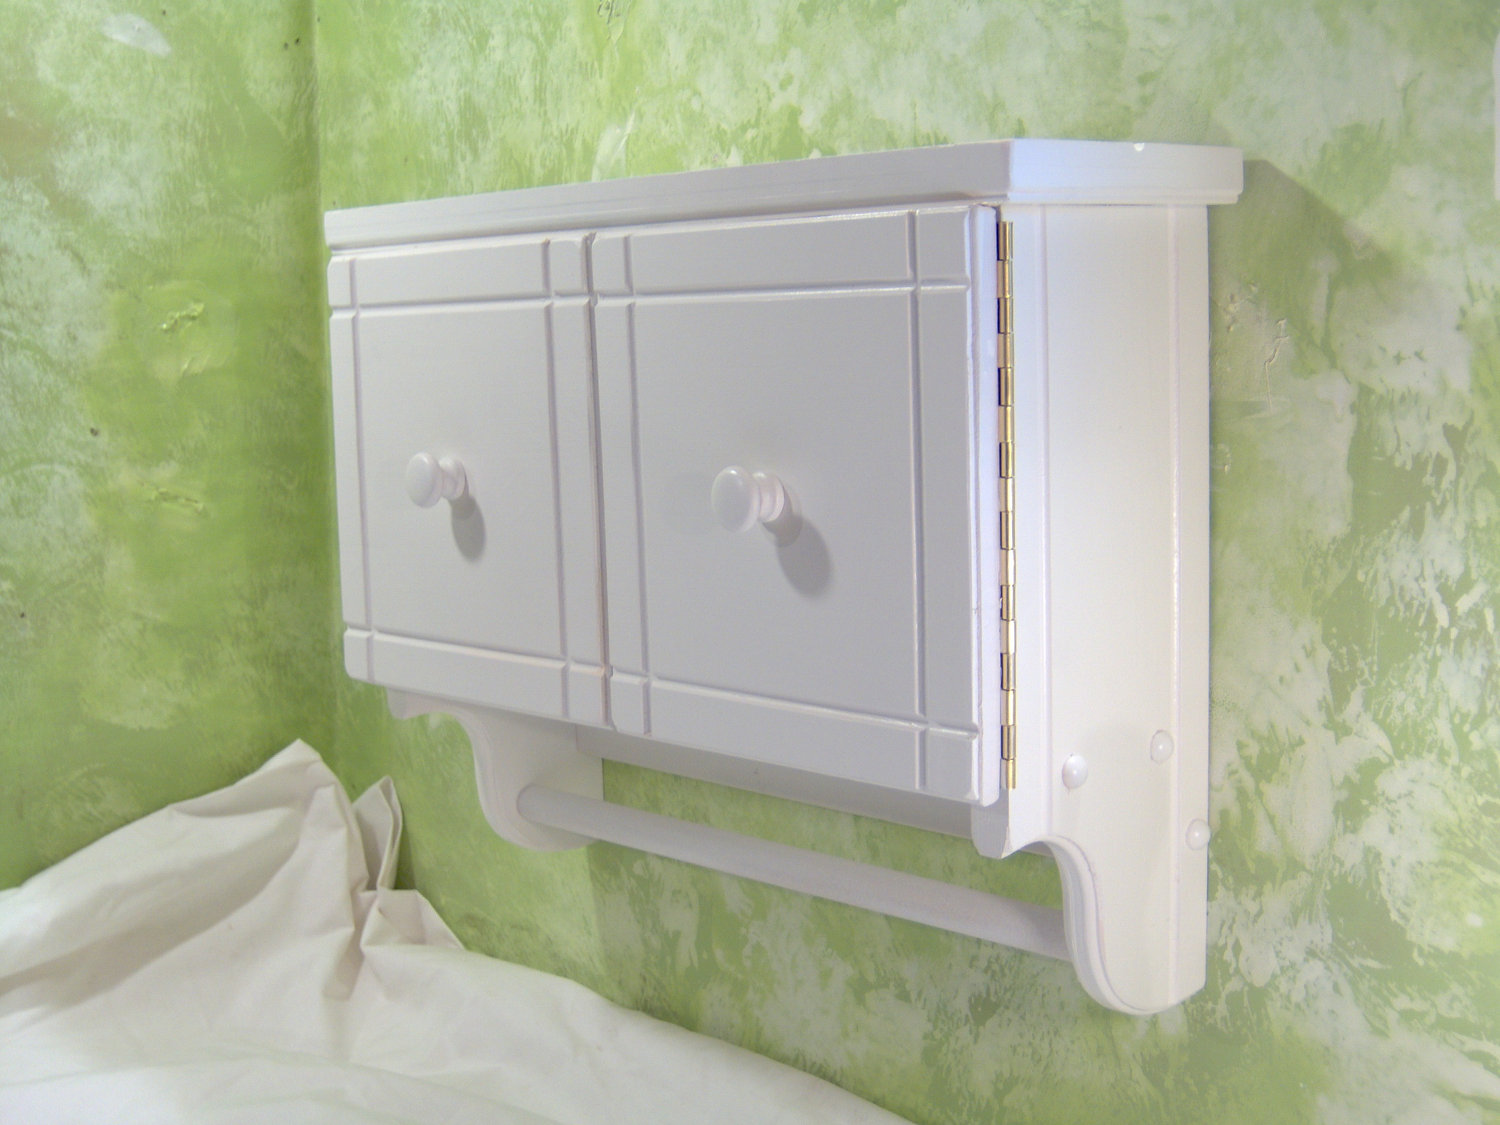 Bathroom wall cabinets white